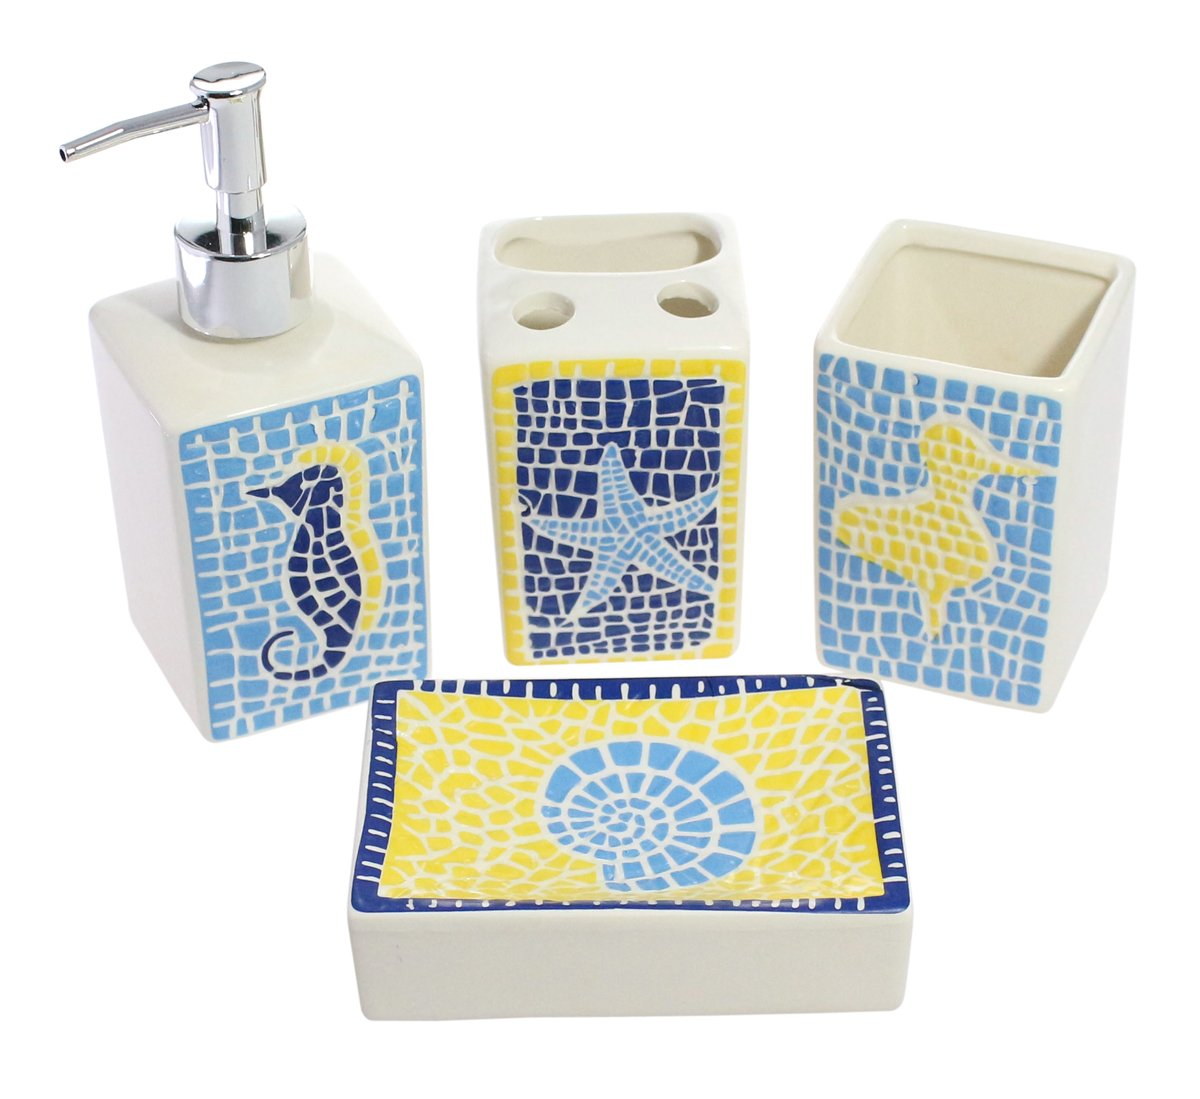 Cute Nautical Themed Decorative 4-Piece Ceramic Bathroom Accessory Set (Includes Tumbler, Toothbrush Holder, Lotion Dispenser, Soap Dish) With Adorable Starfish and Seashell Printed - Brown OuKai